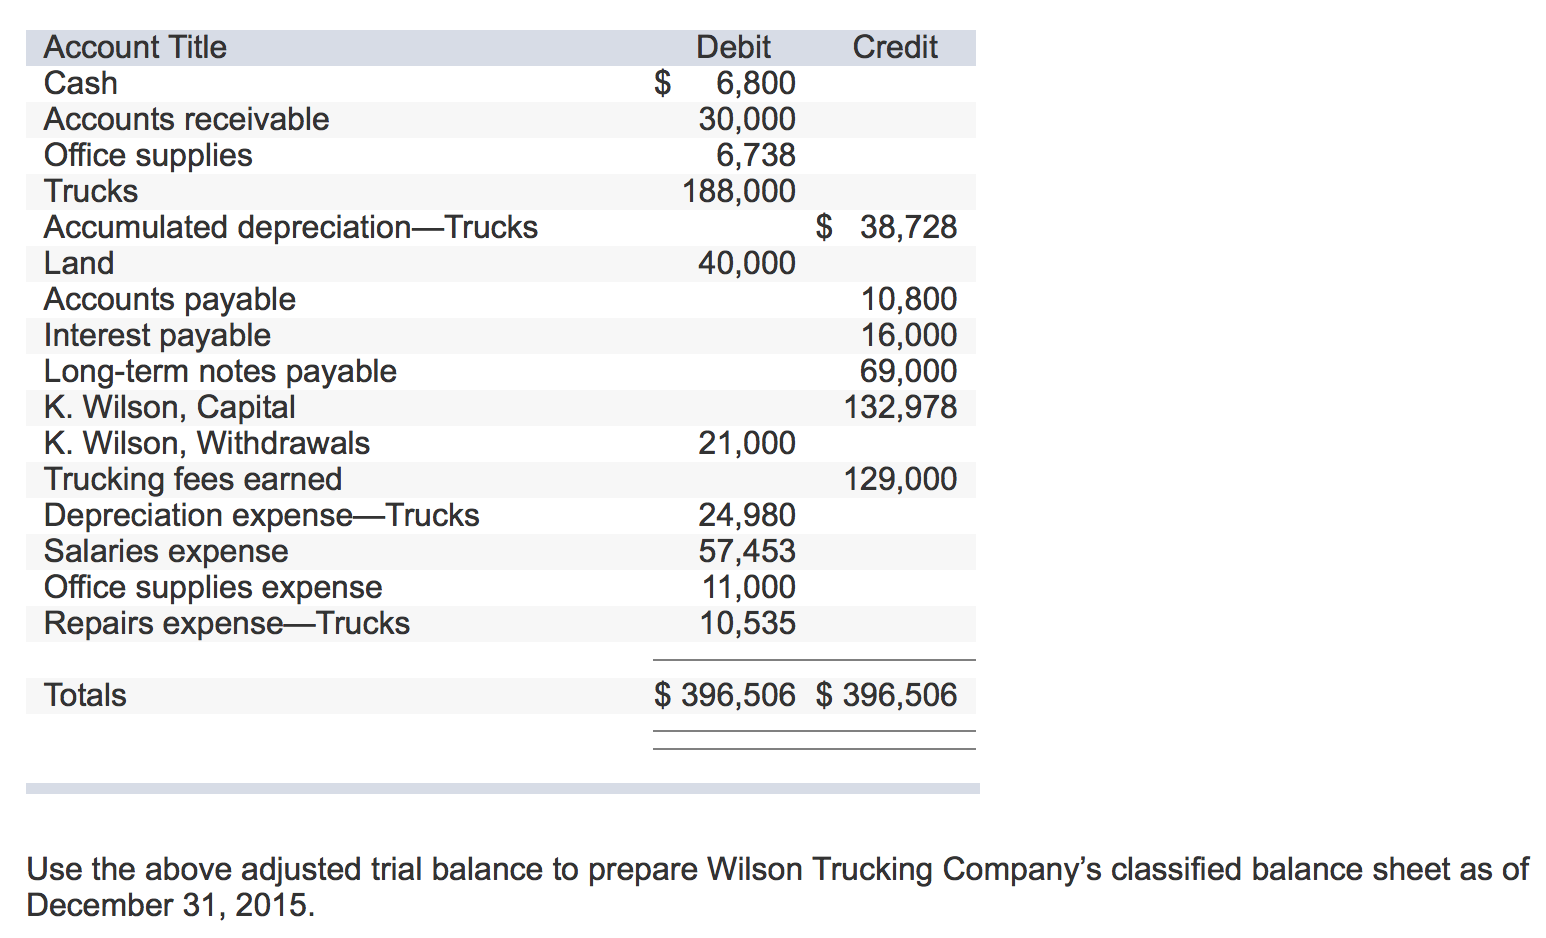 Question: Use The Above Adjusted Trial Balance To Prepare Wilson Trucking  Companyu0027s Classified Balance Shee.  Prepare Balance Sheet